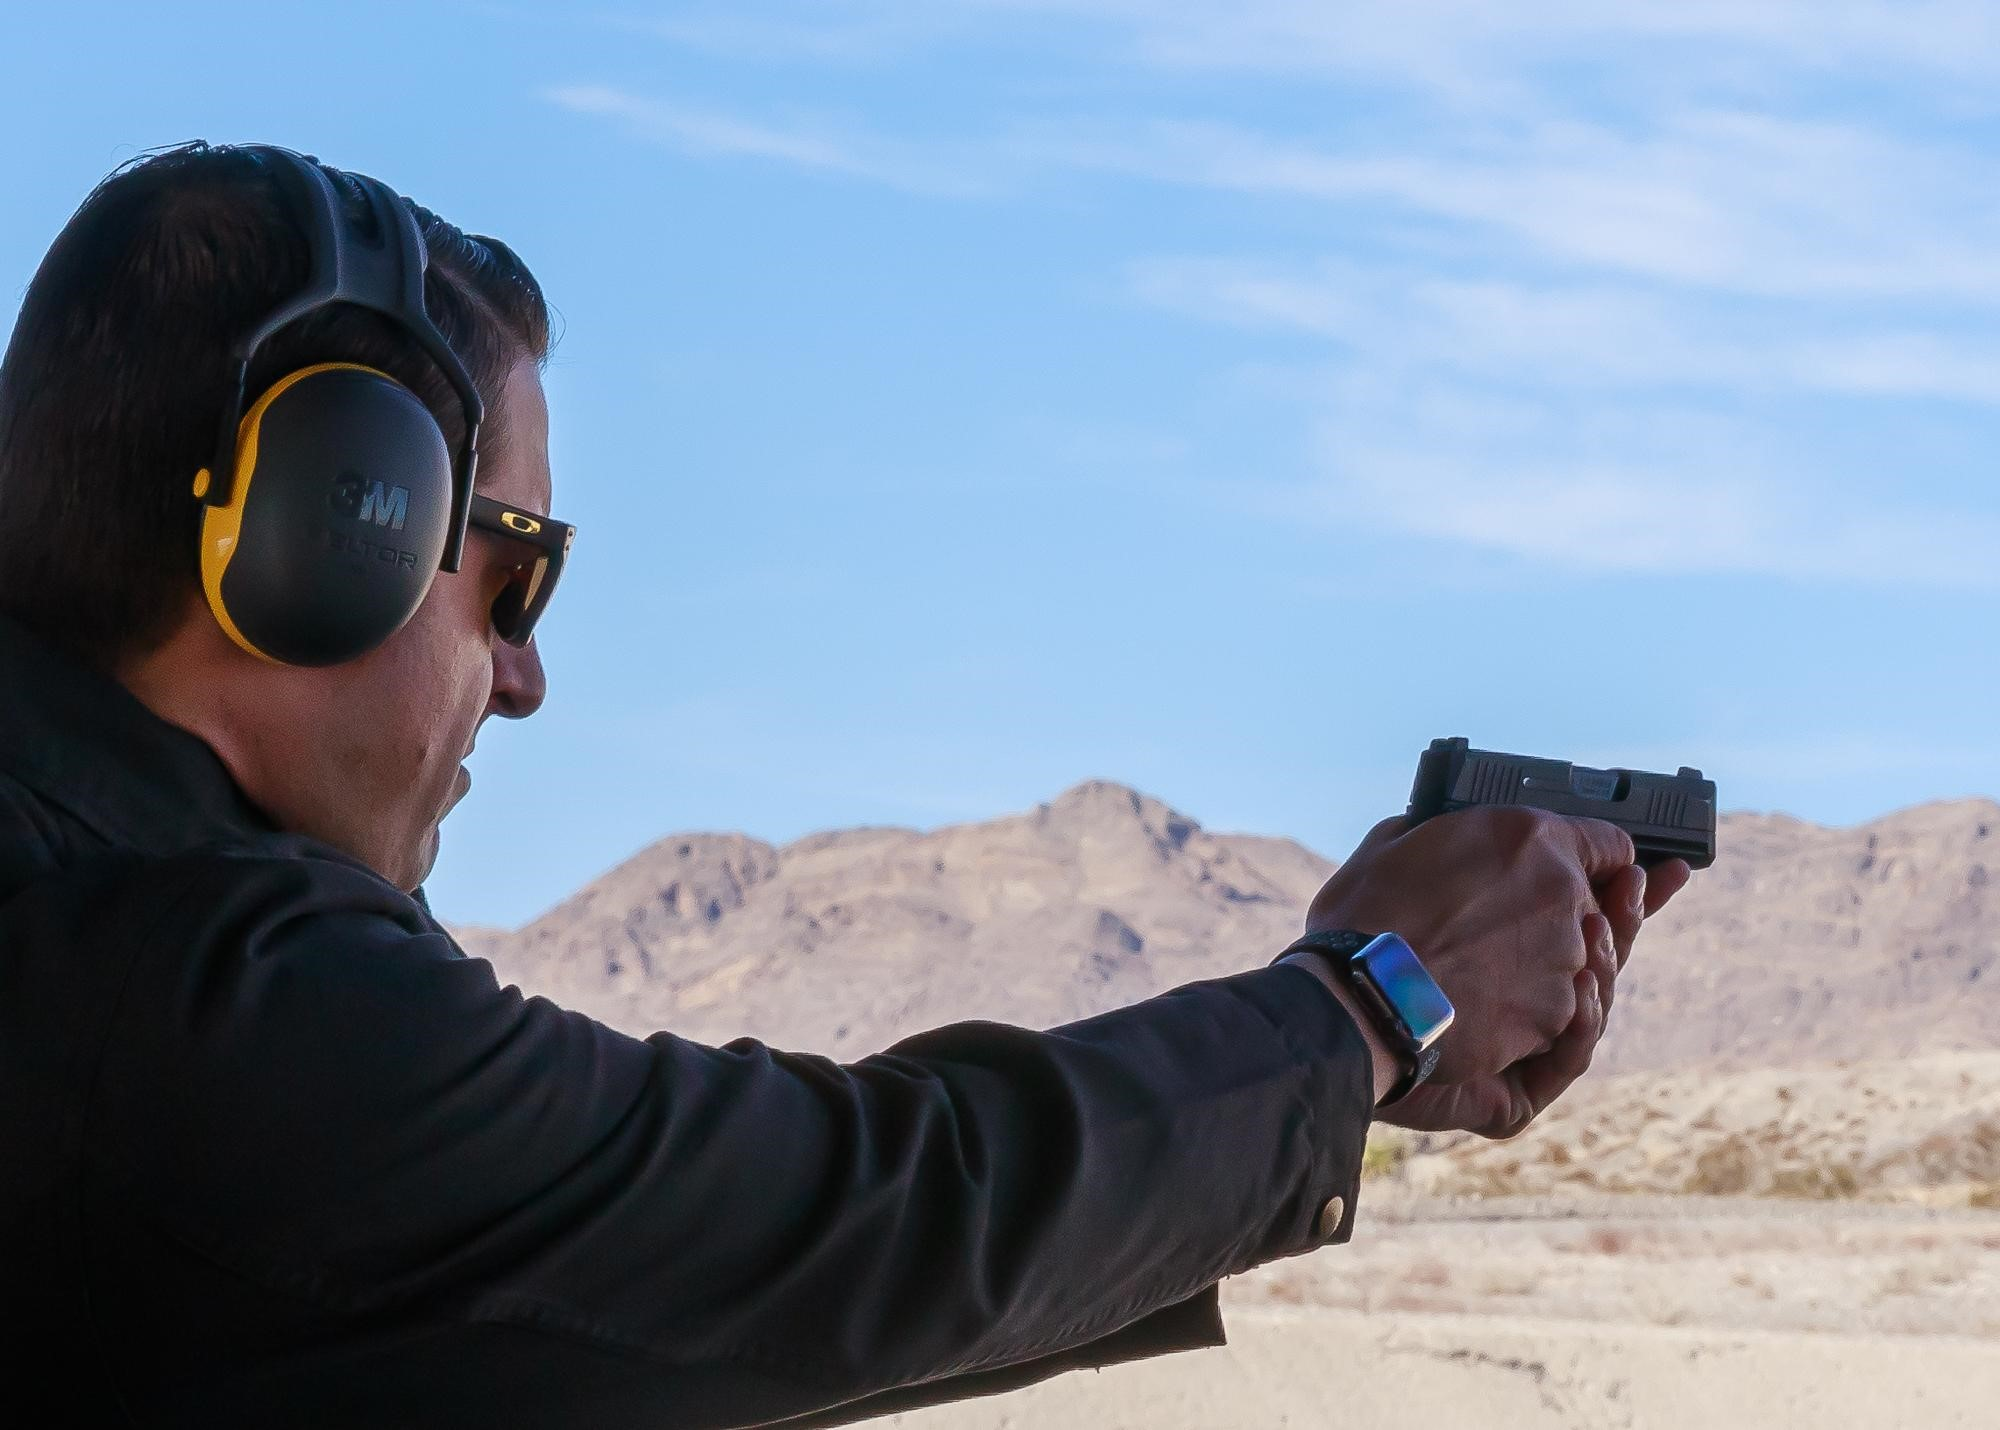 Product Review: Sig Sauer P365 9mm Micro Compact | Handgun